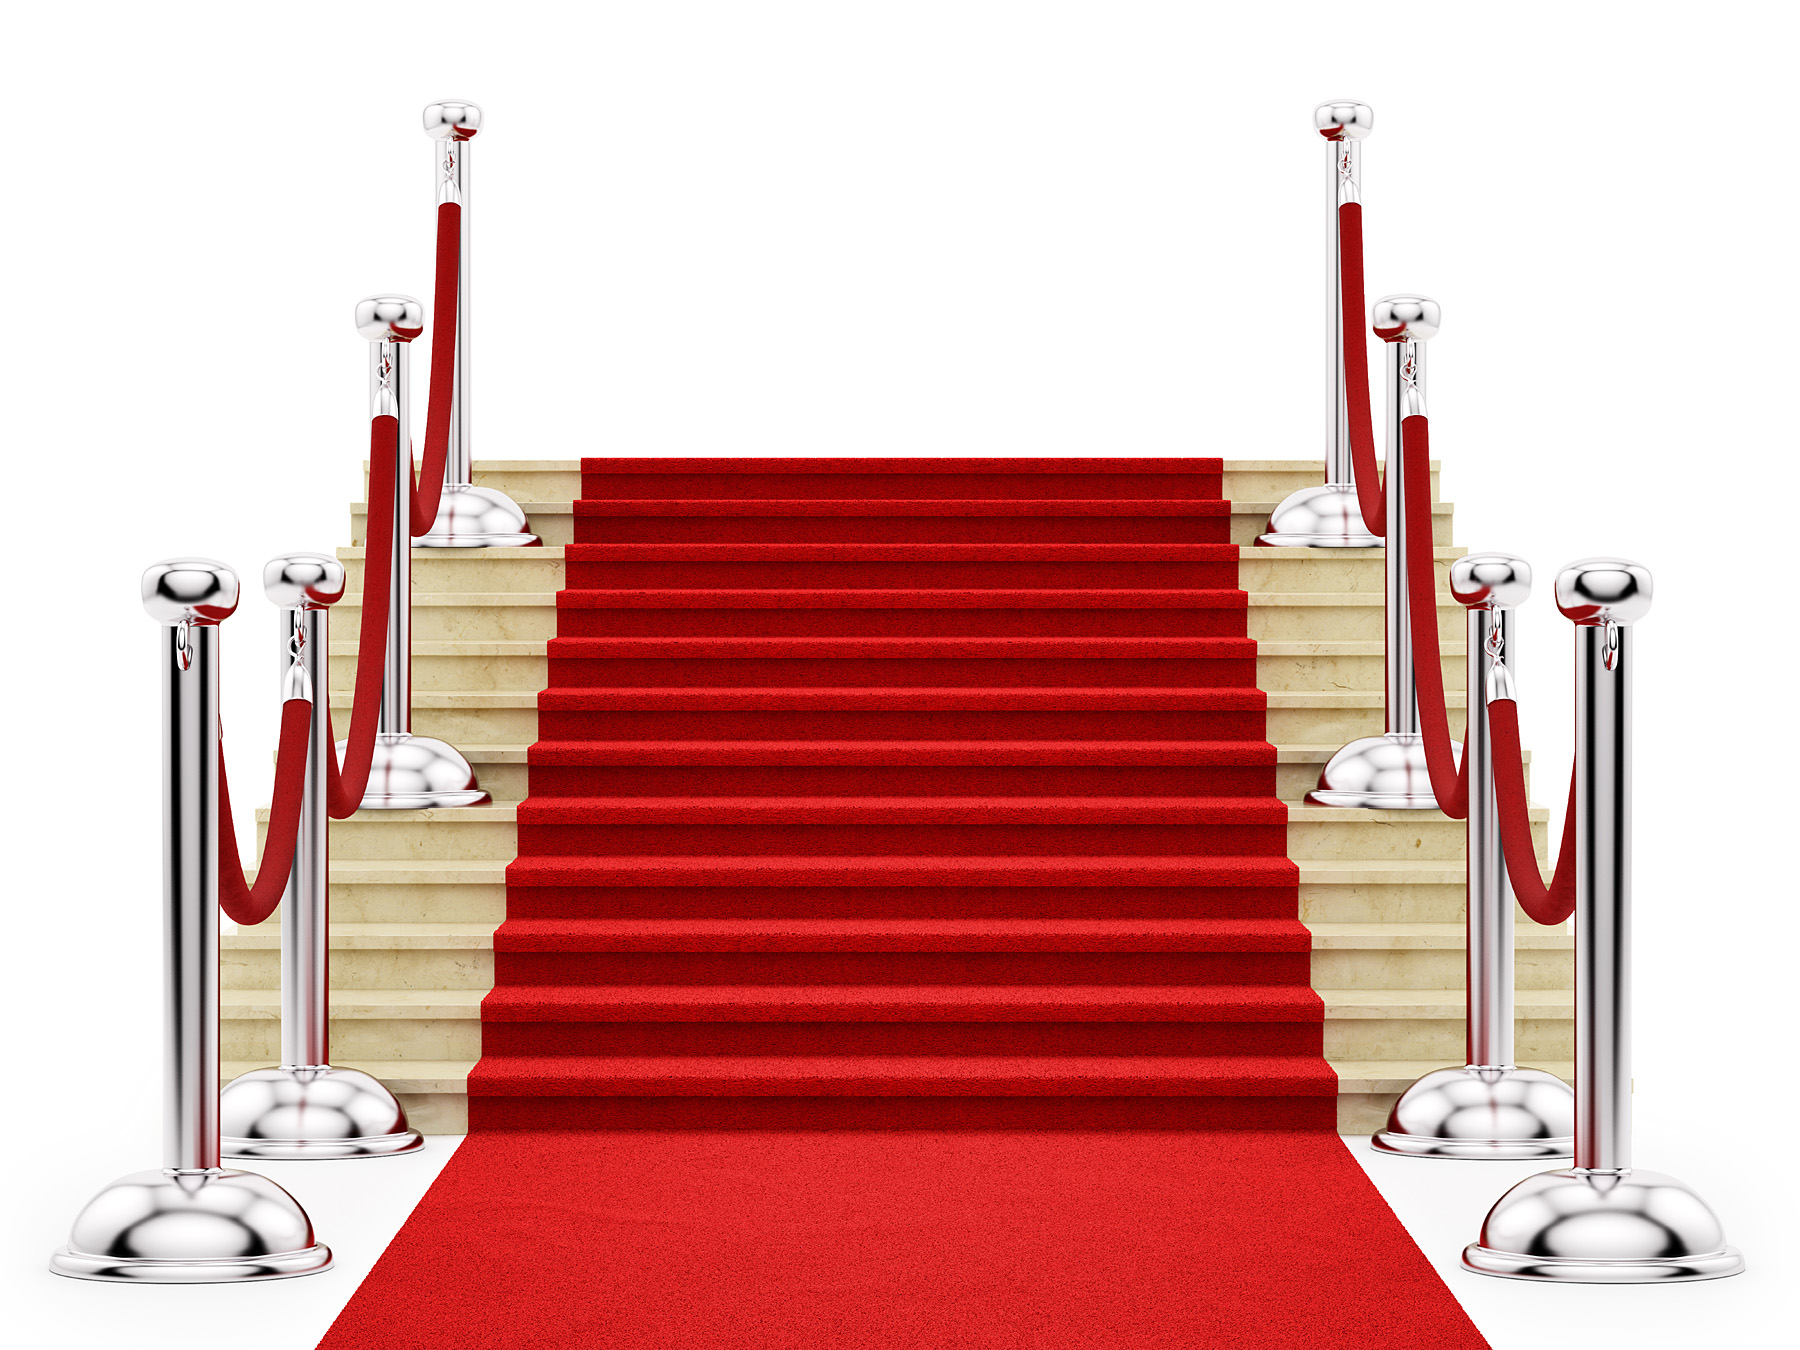 Red carpet stairs 46693 stage venue others download red carpet